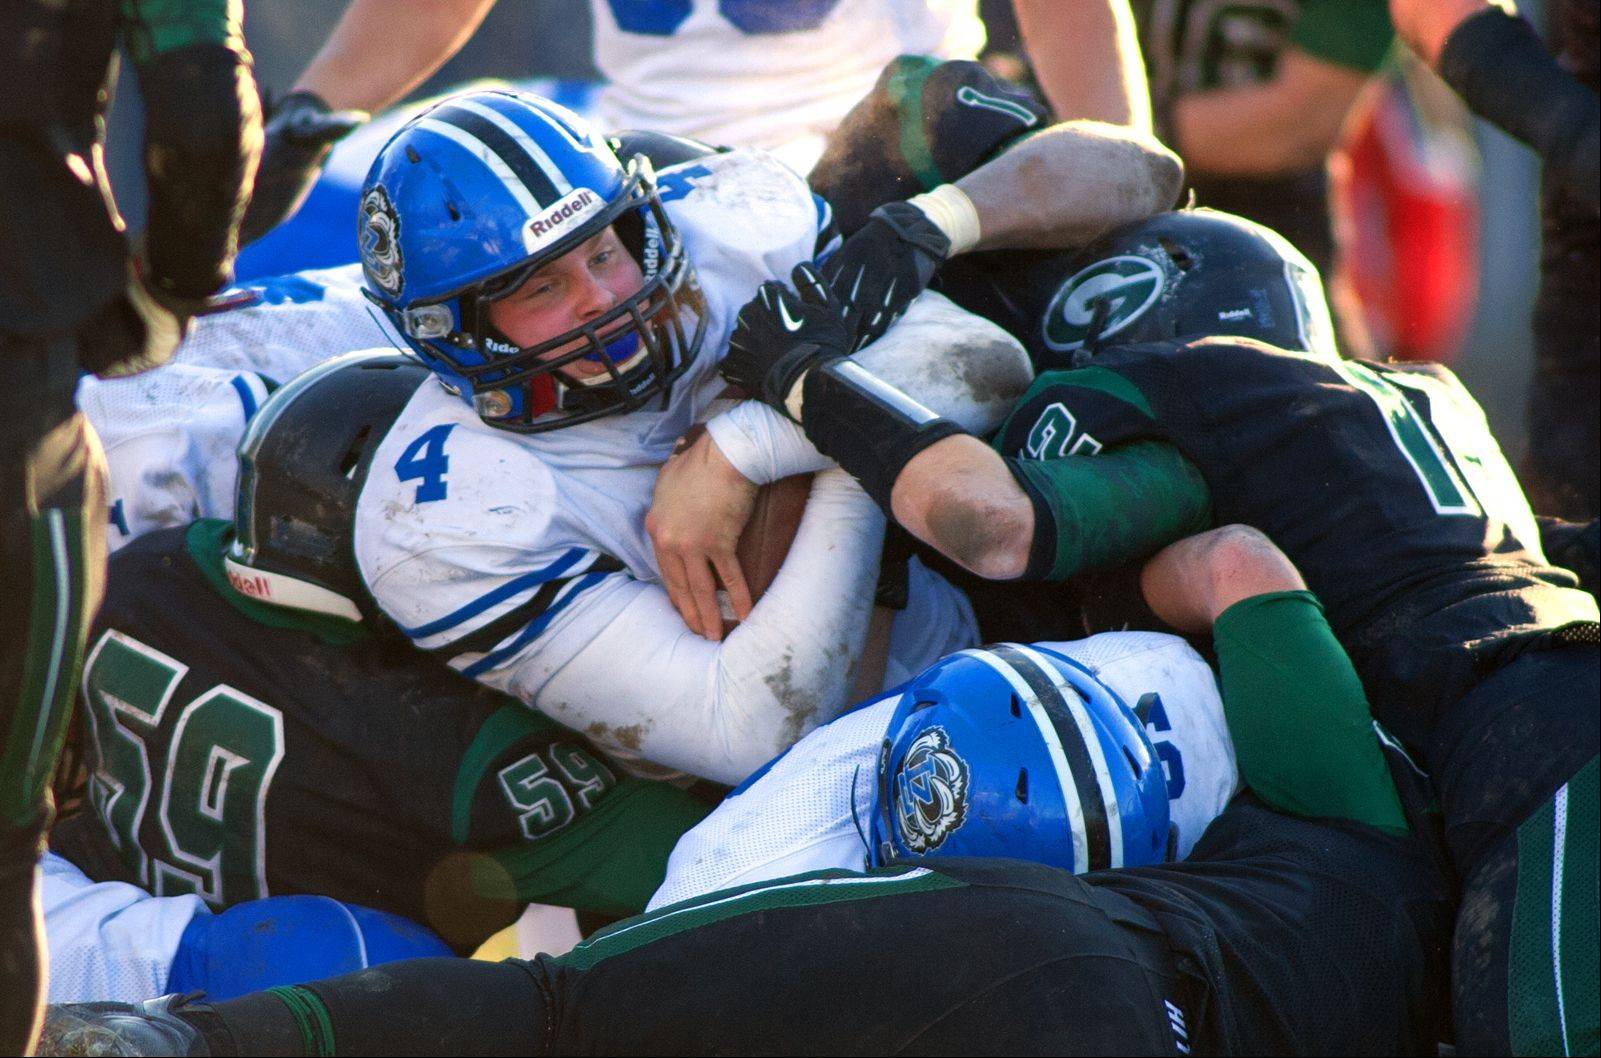 Lake Zurich quarterback Noah Allgood dives over the goal line for a touchdown Saturday against Glenbard West.